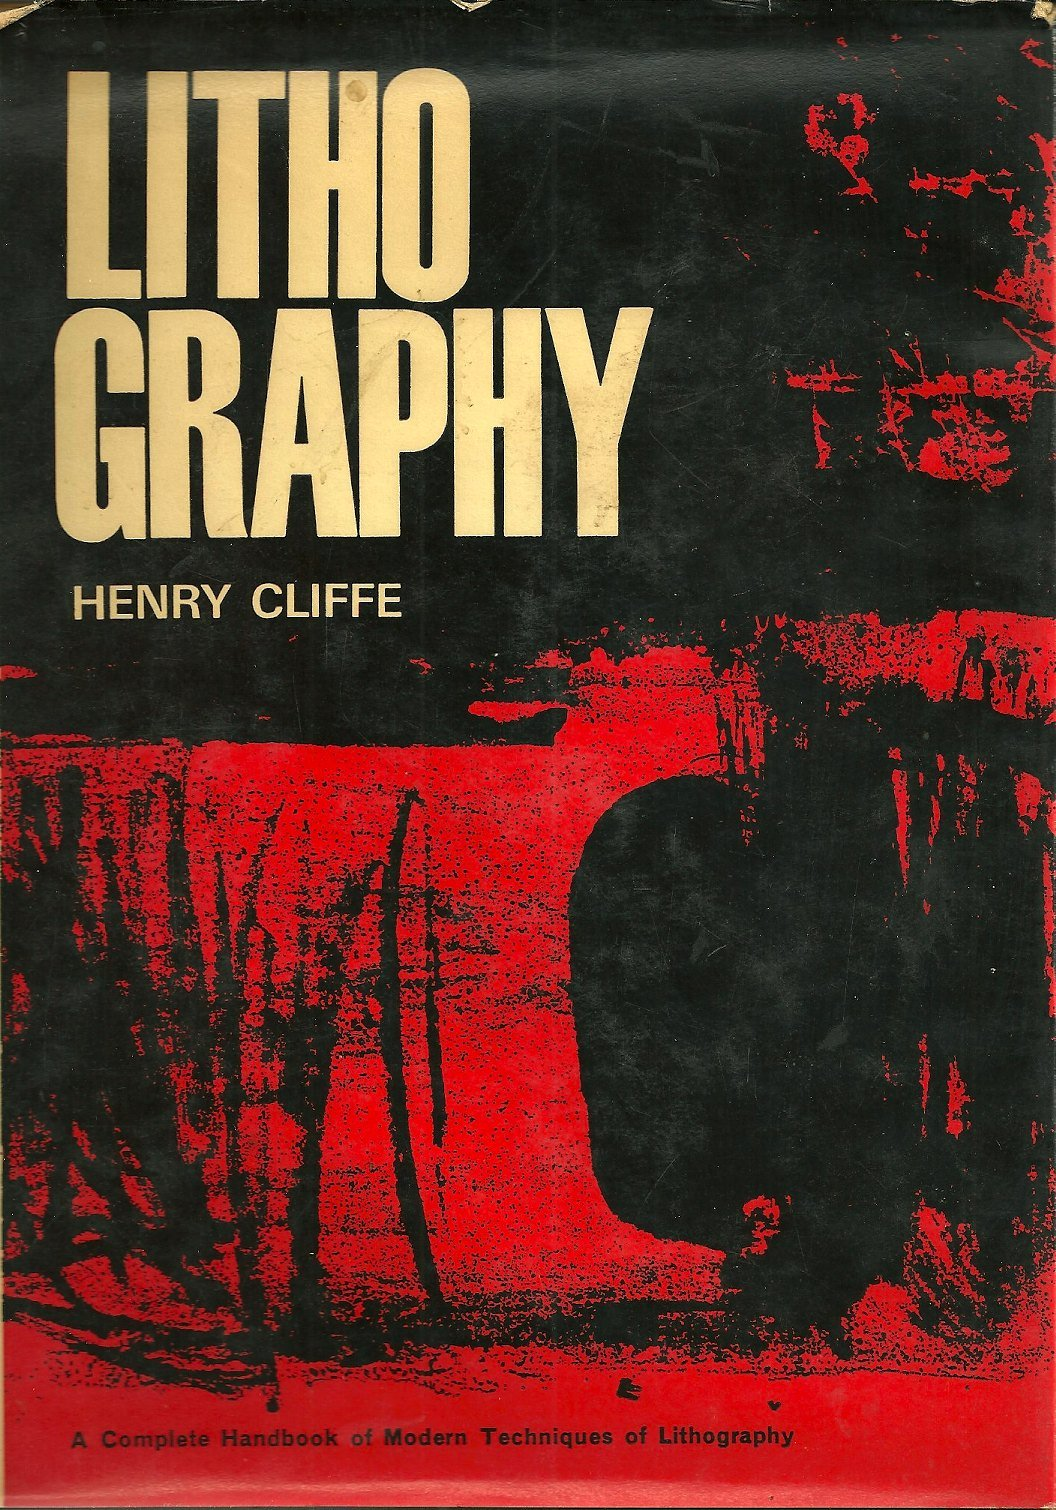 Lithography; a complete handbook of modern techniques of lithography Hardcover – 1967 Henry Cliffe WATSON-GUPTILL 1967 B00005XNKE GD-119-EK-91410B9